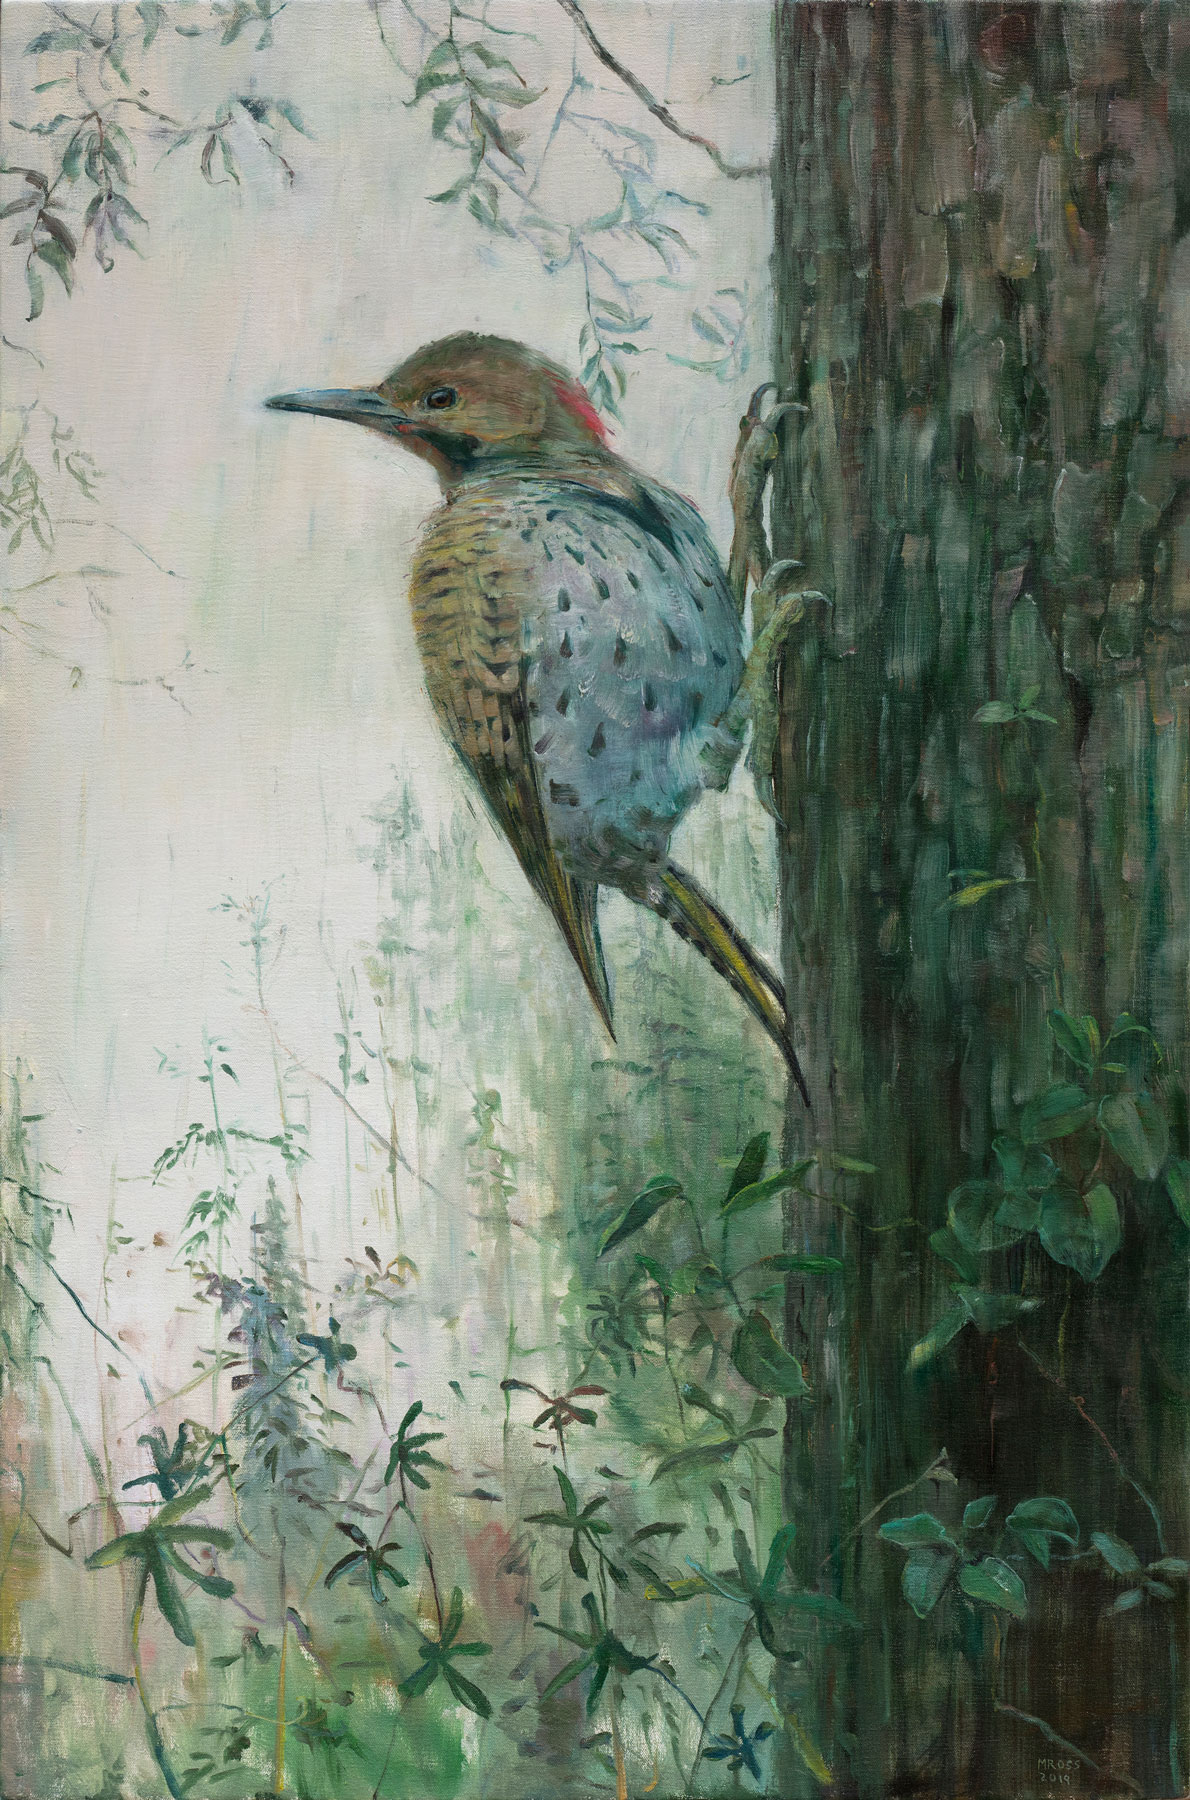 Flicker in the Rain